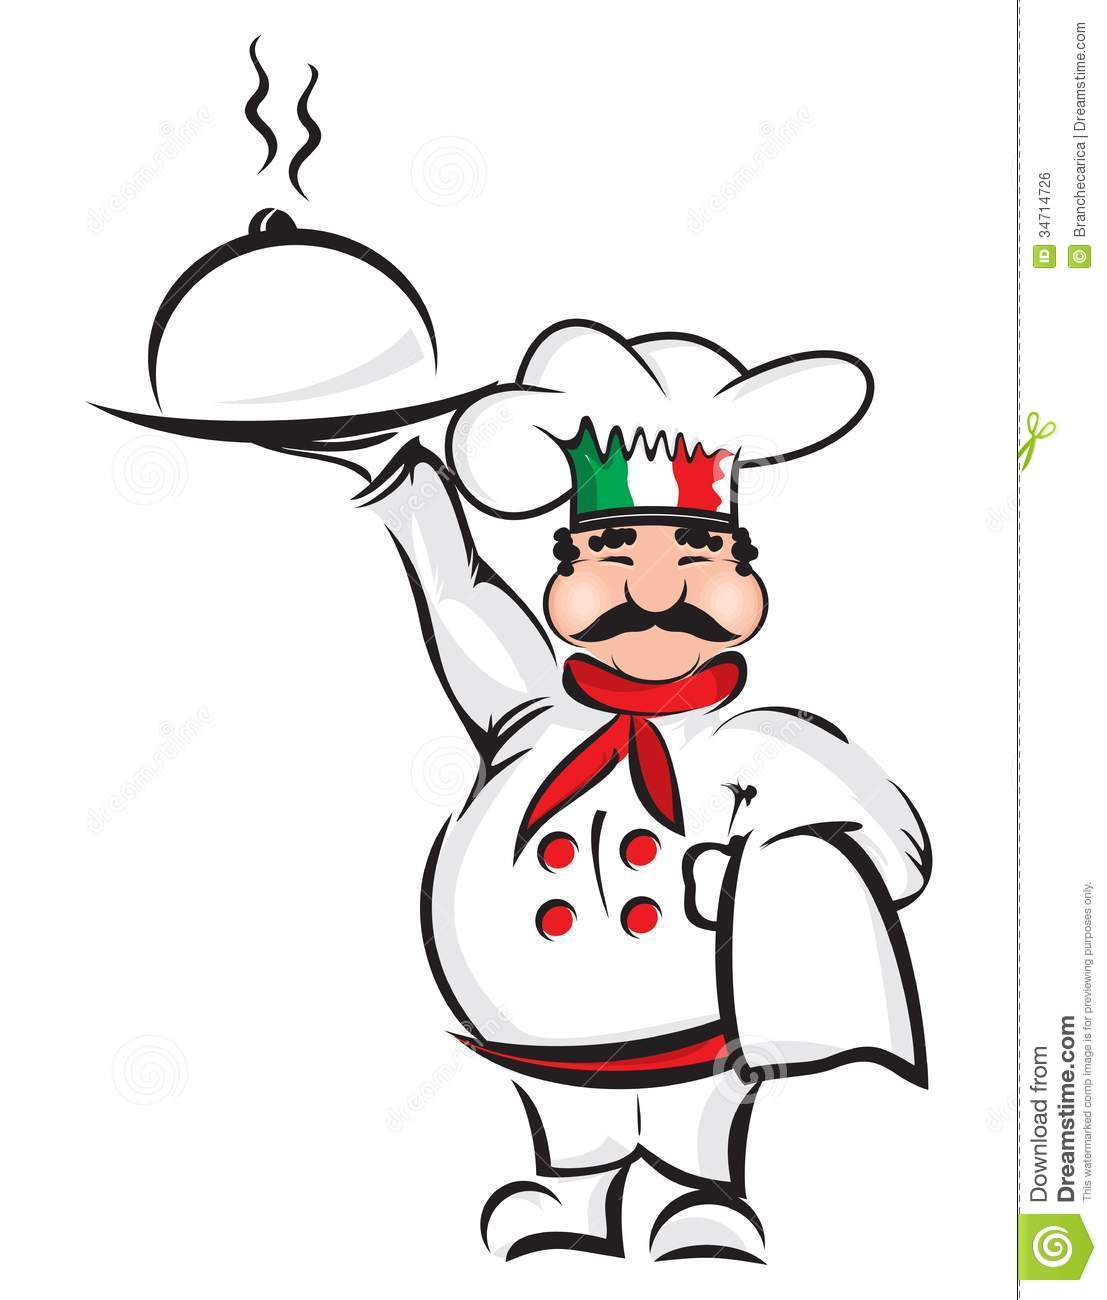 chef royalty free stock image image 34714726 italian chef clipart png italian pizza chef clipart